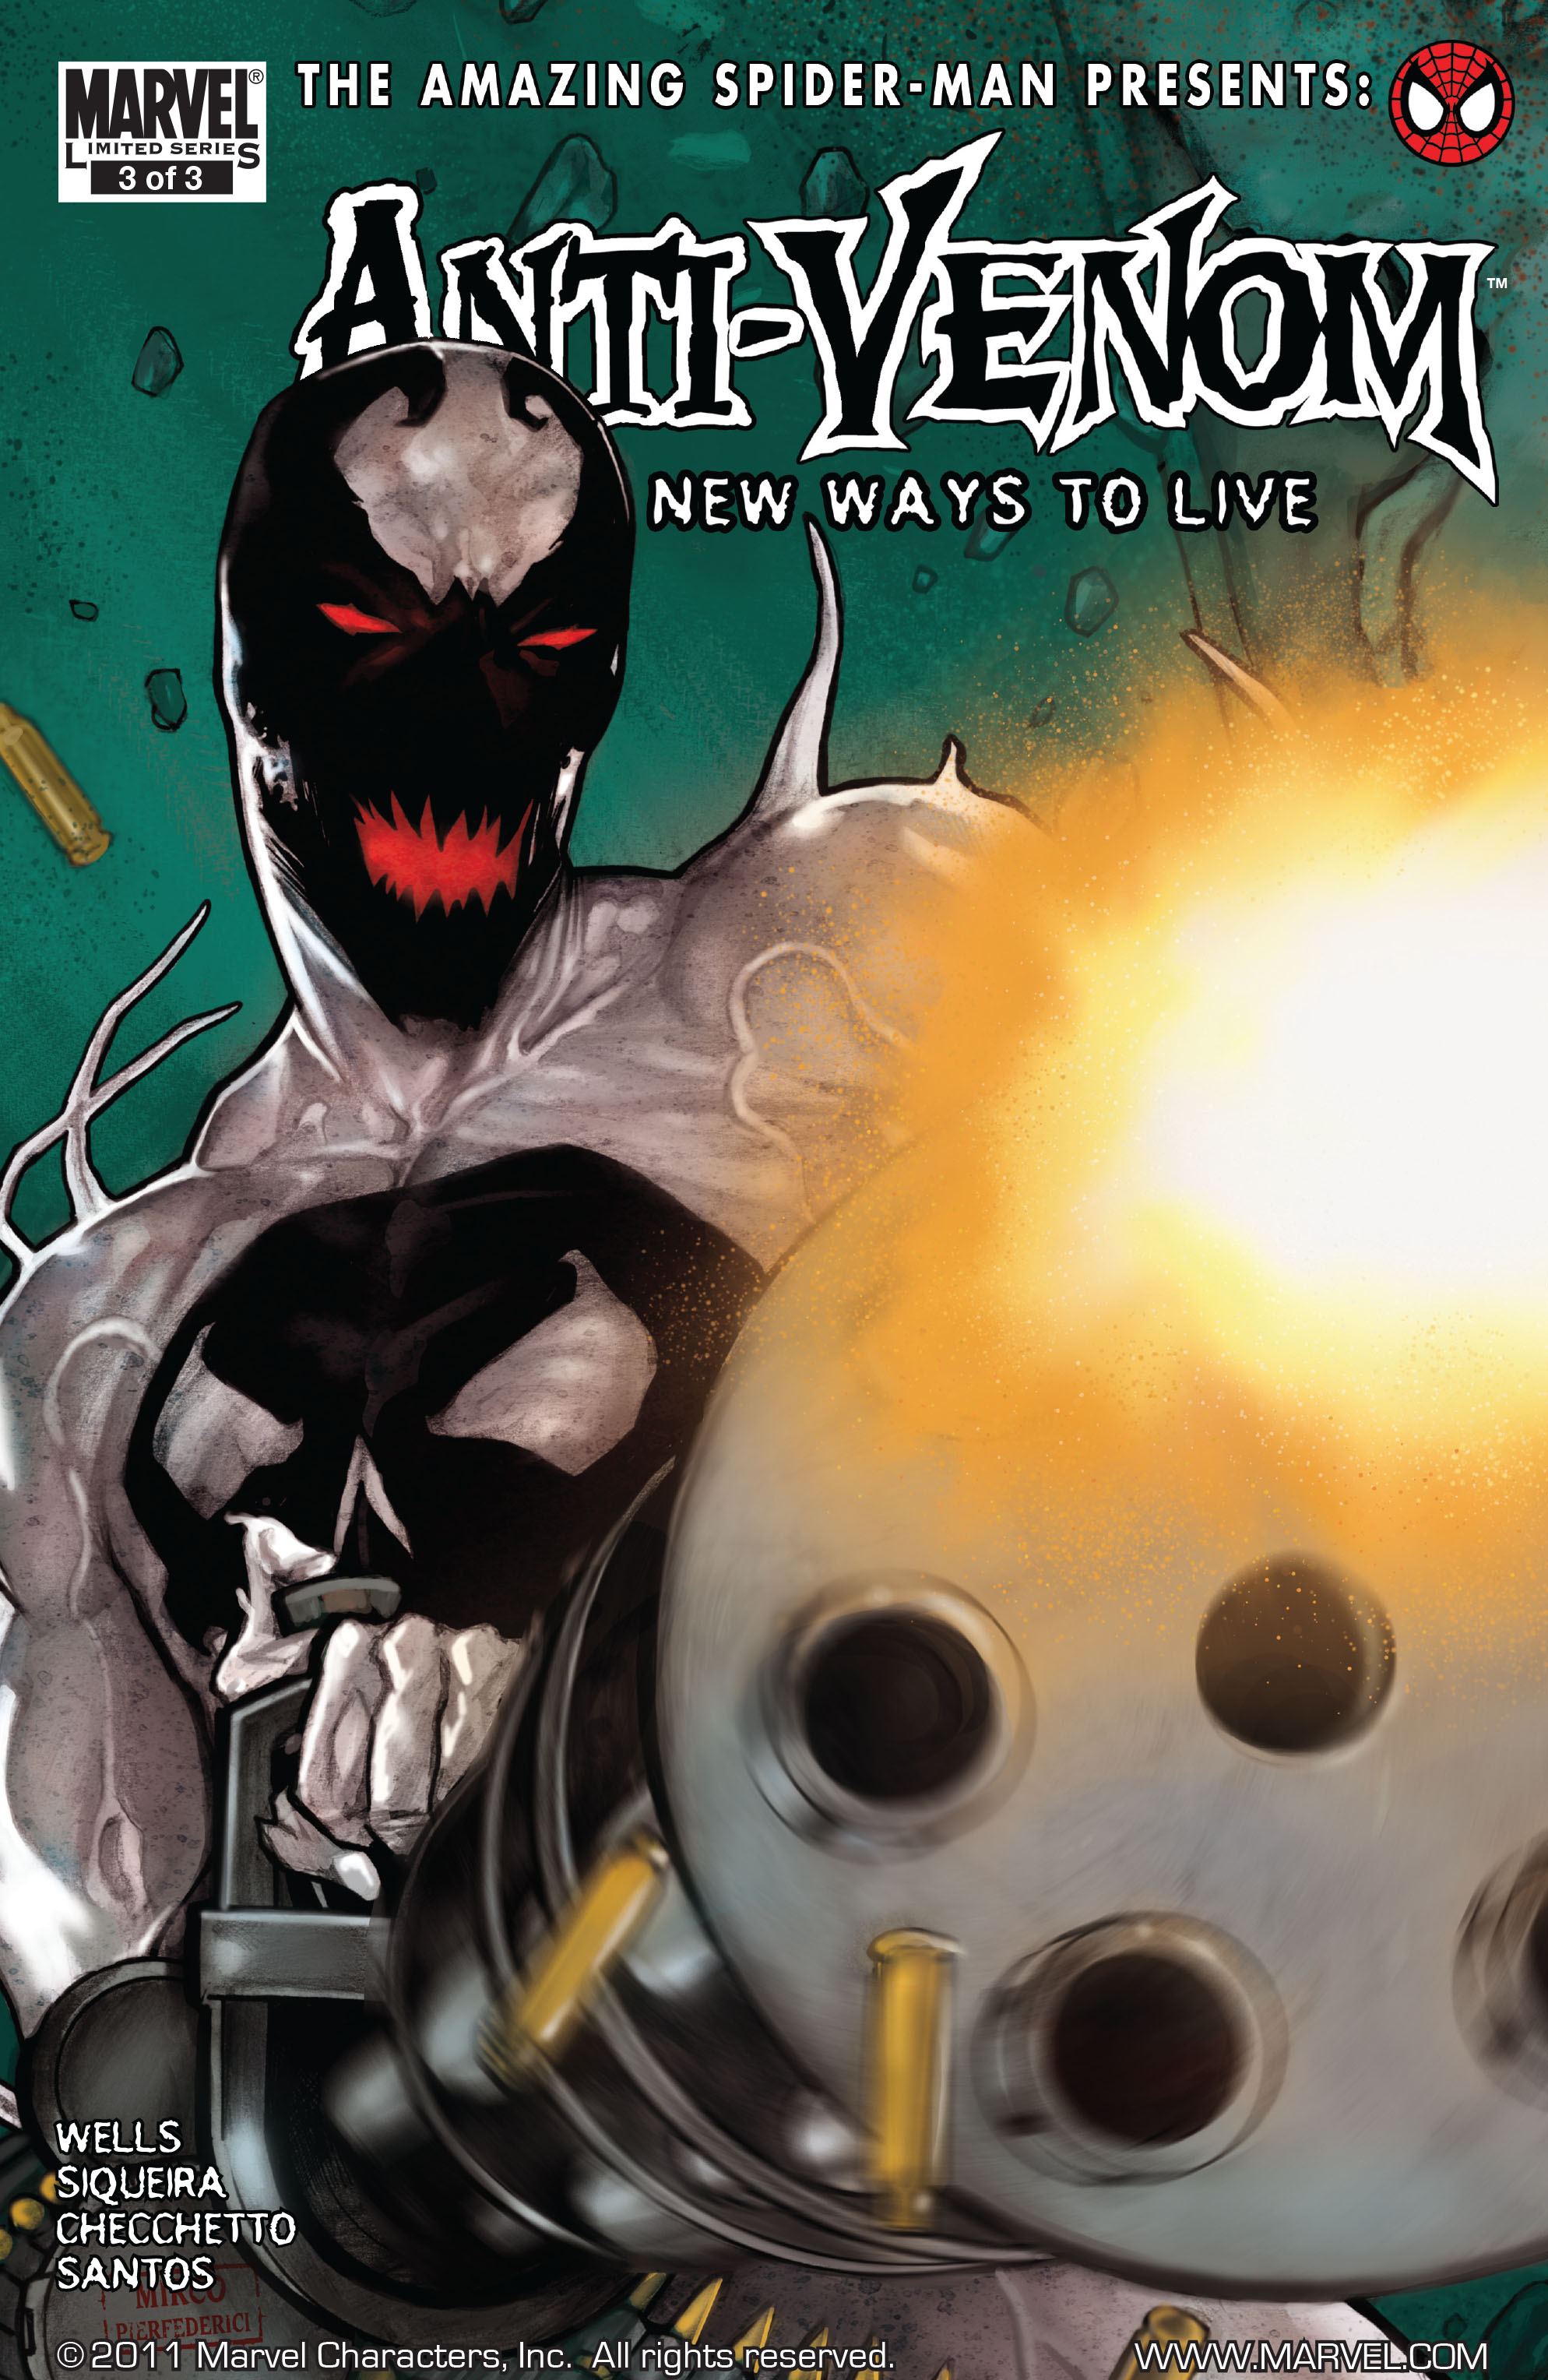 Amazing Spider-Man Presents: Anti-Venom - New Ways To Live 3 Page 1